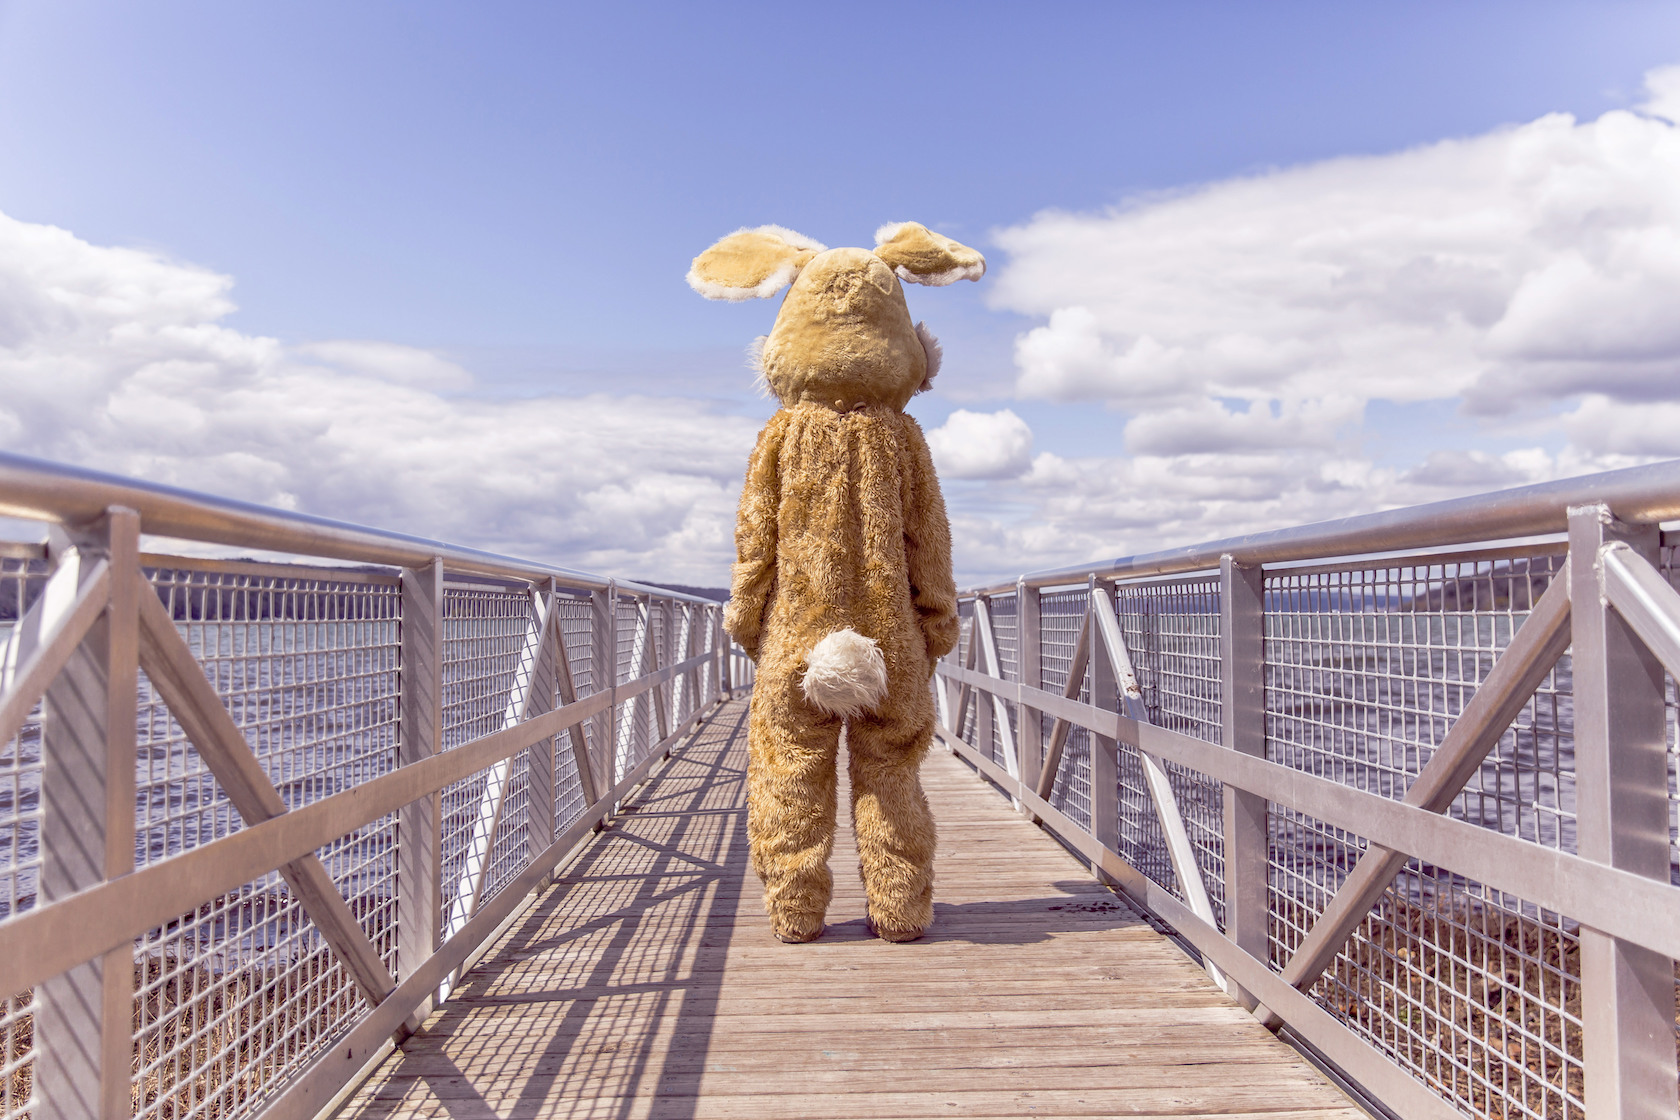 gratisography bunny mascot on pier losing a character